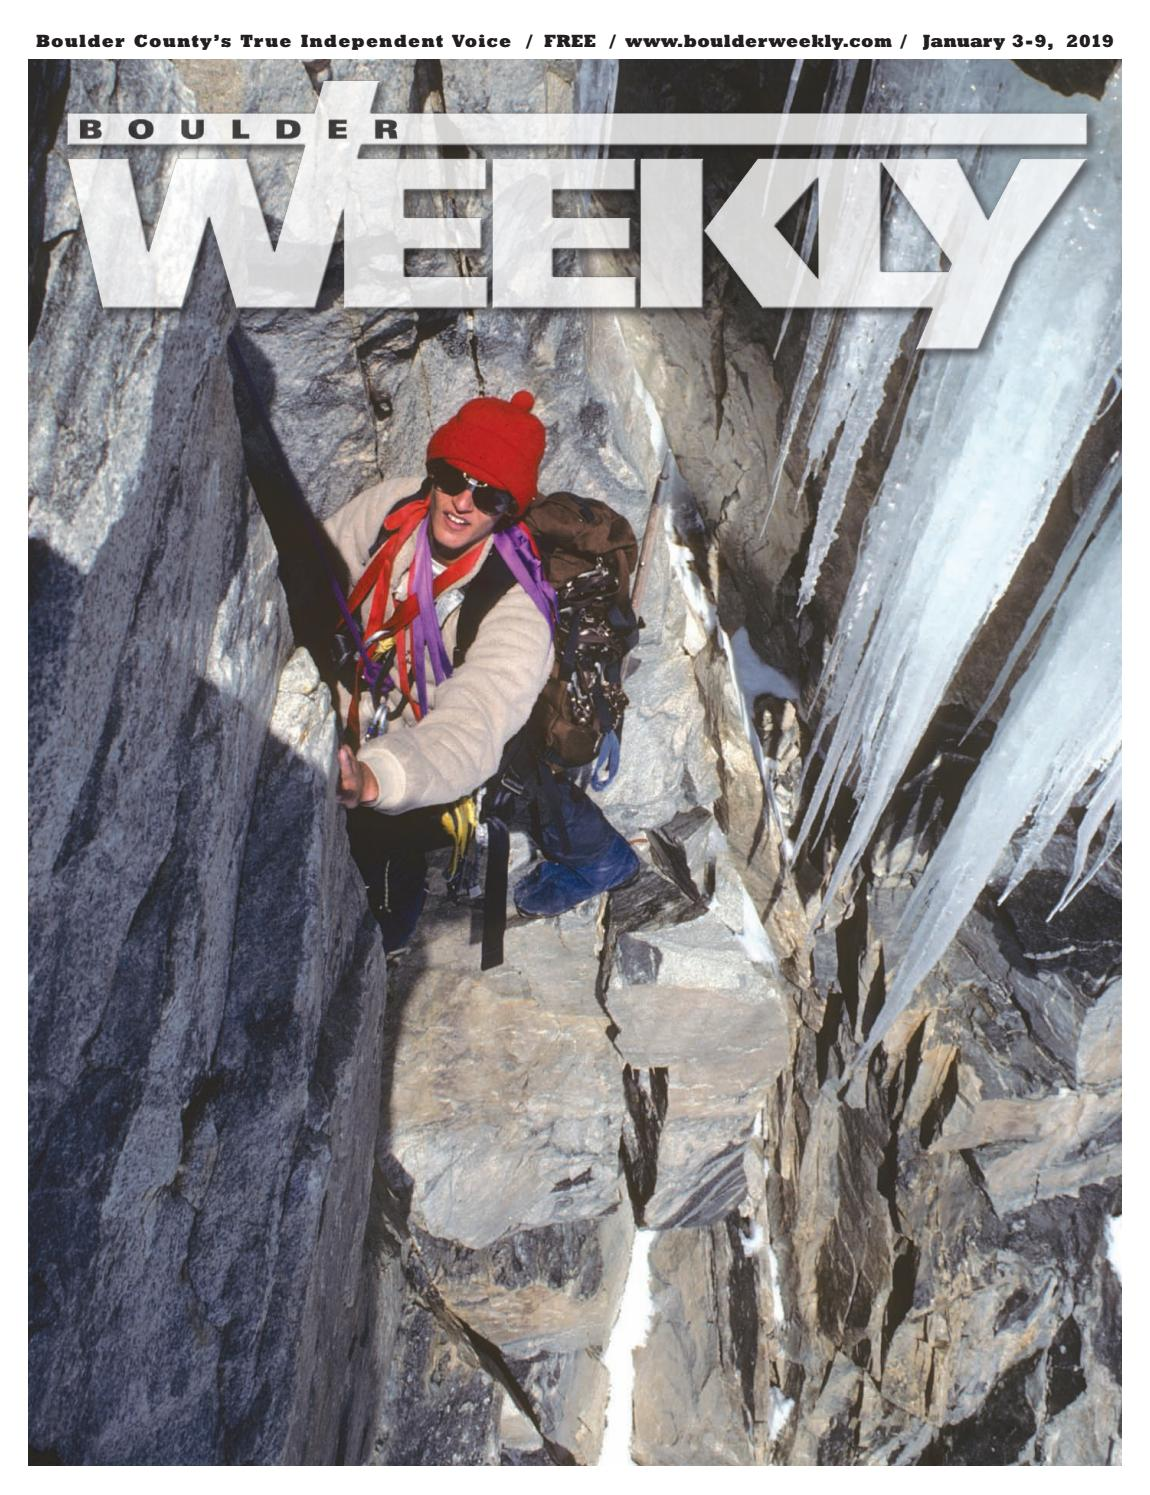 a5054df72951 1.3.19 Boulder Weekly by Boulder Weekly - issuu